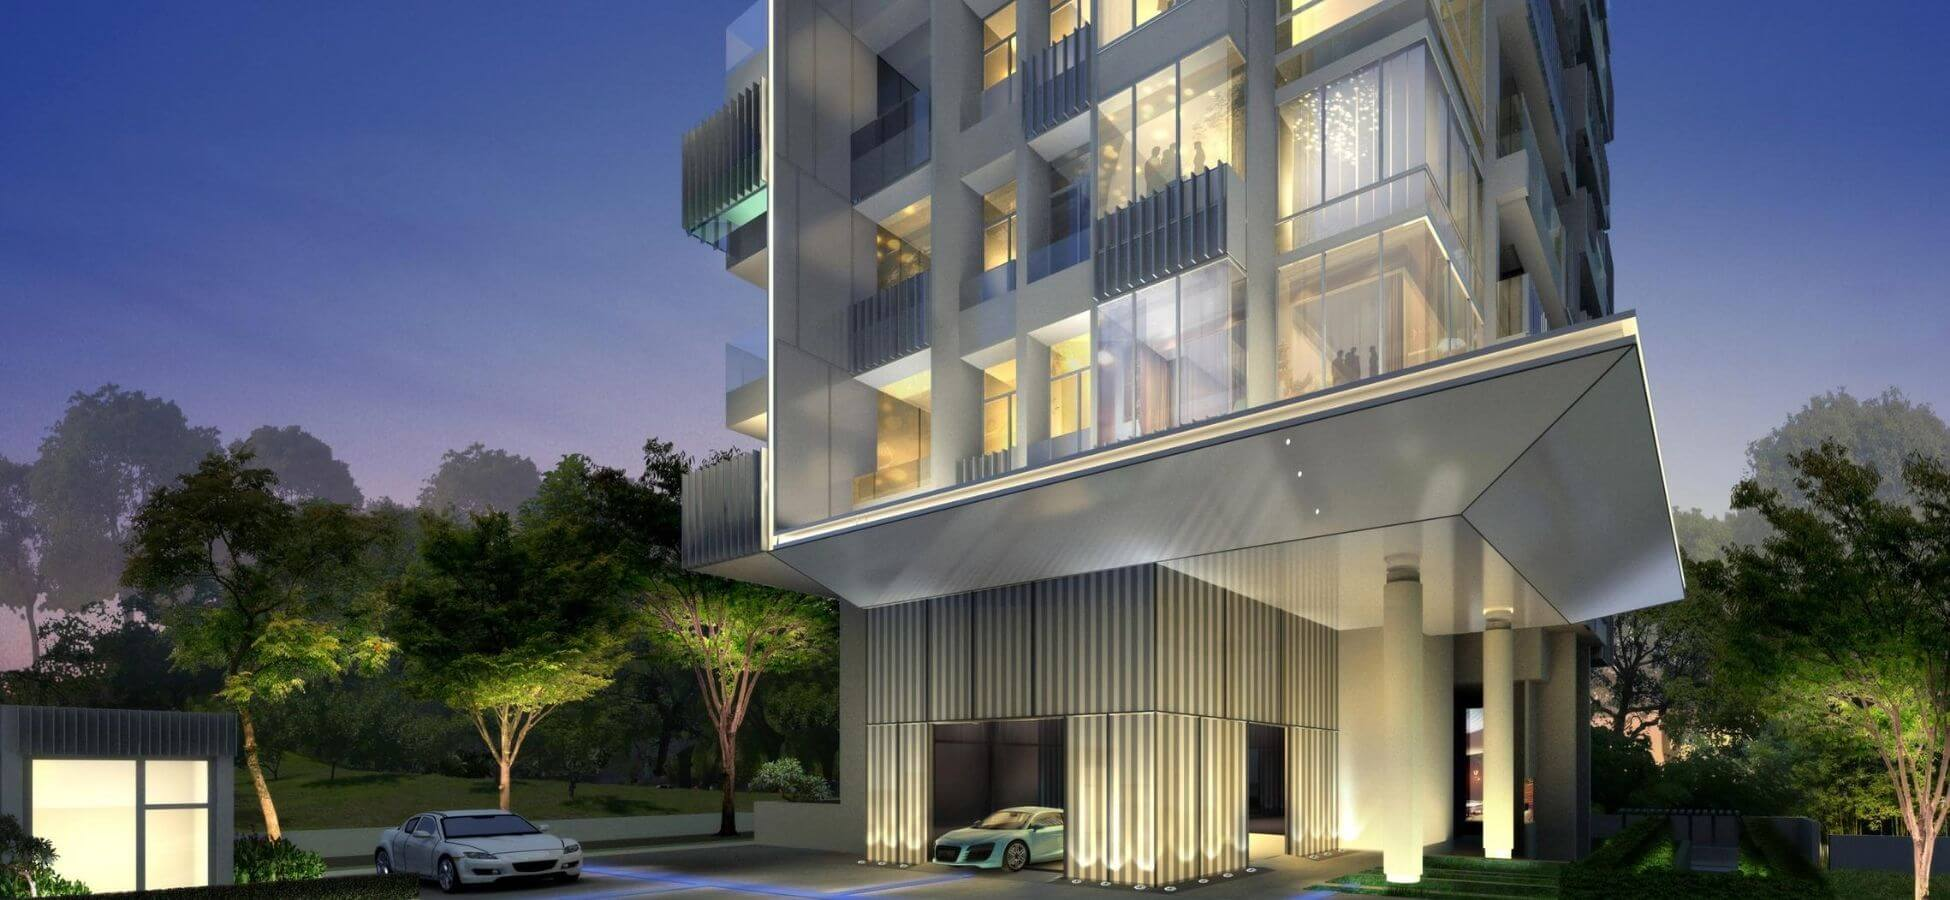 <span>The Peak @ Cairnhill I</span> is a Freehold<br>D9 Development